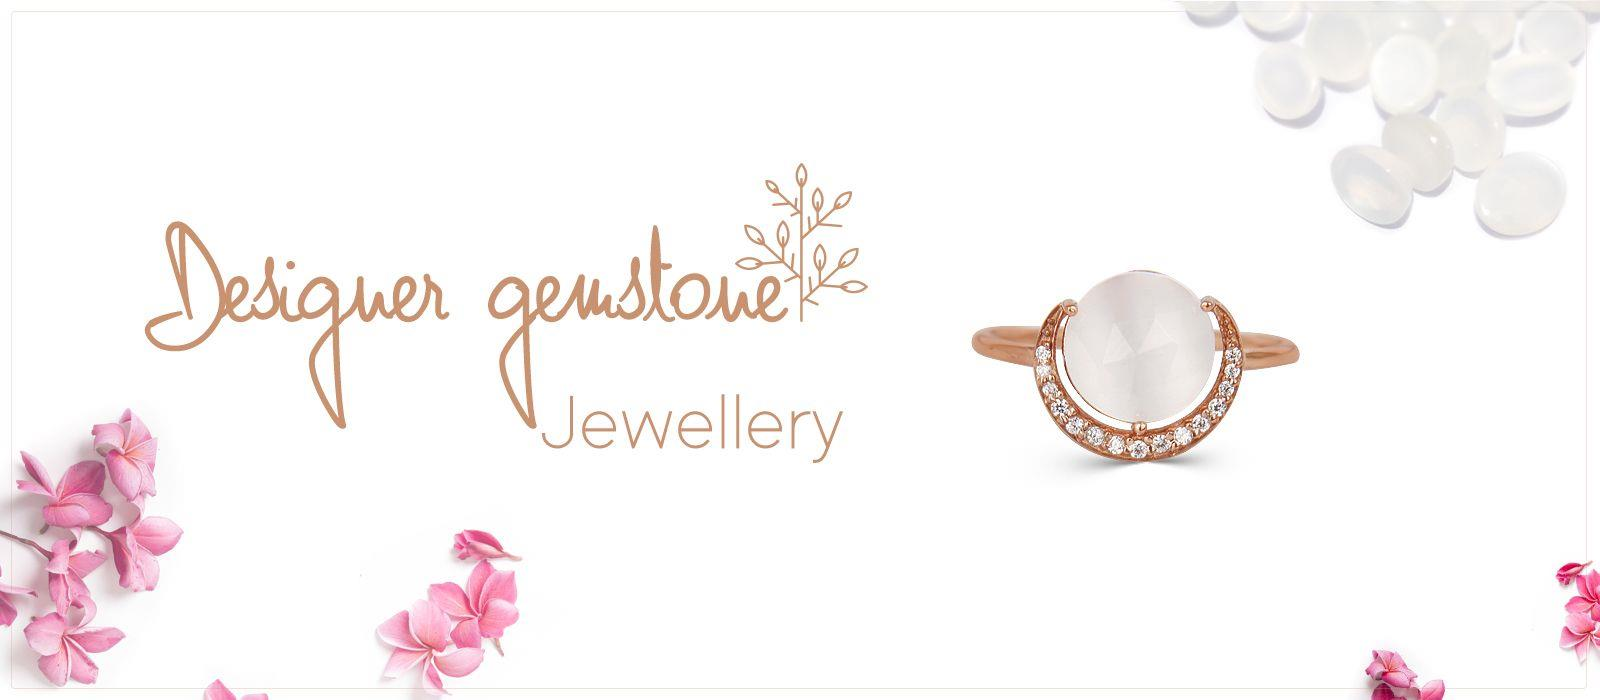 Designer gemstone jewelry